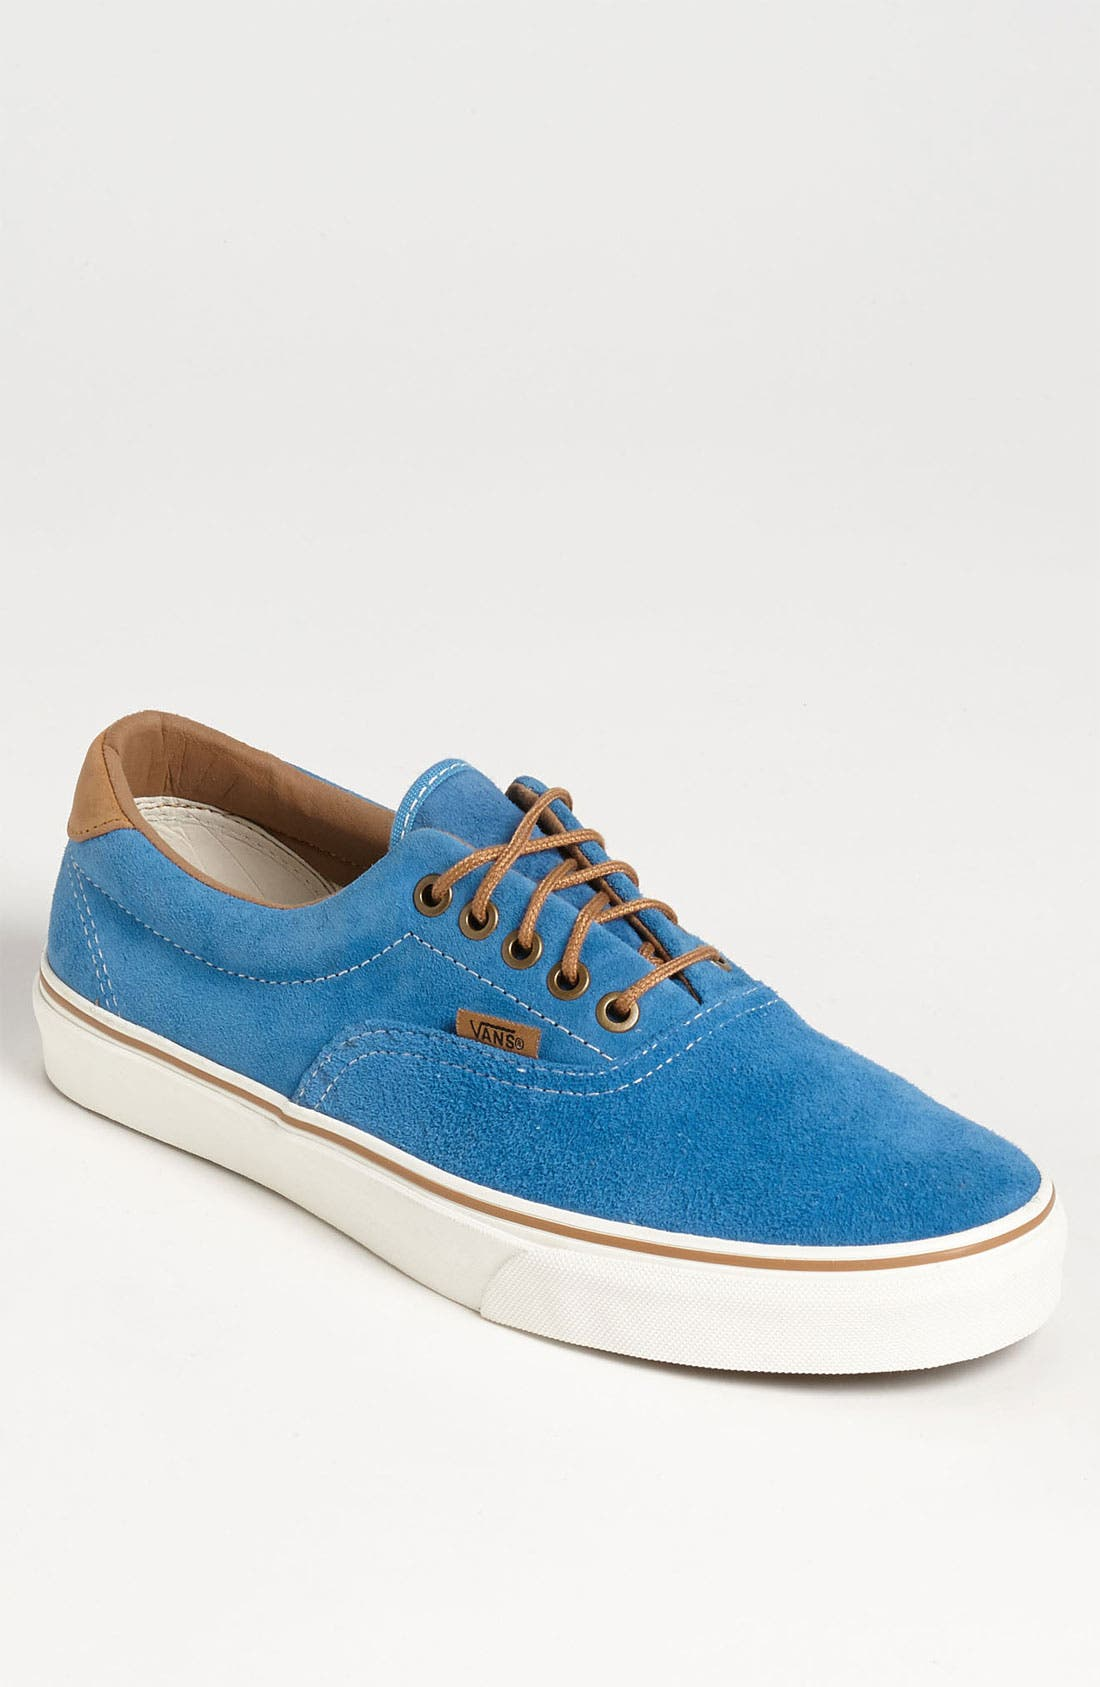 Main Image - Vans 'Cali - Era 59' Sneaker (Men)